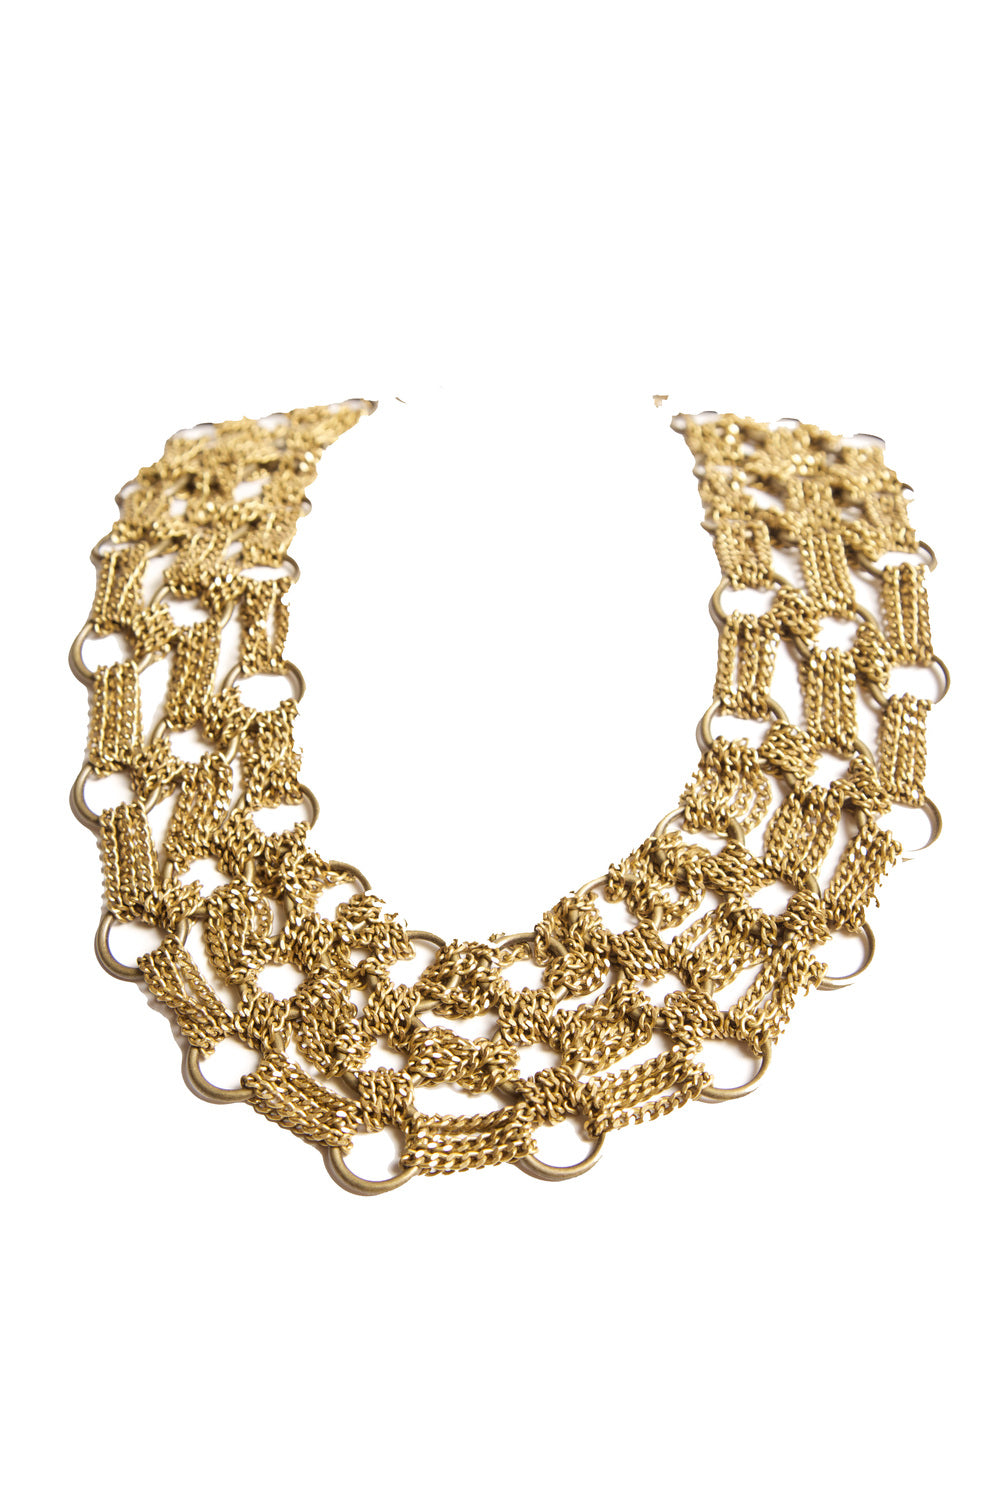 women's statement necklace in gold